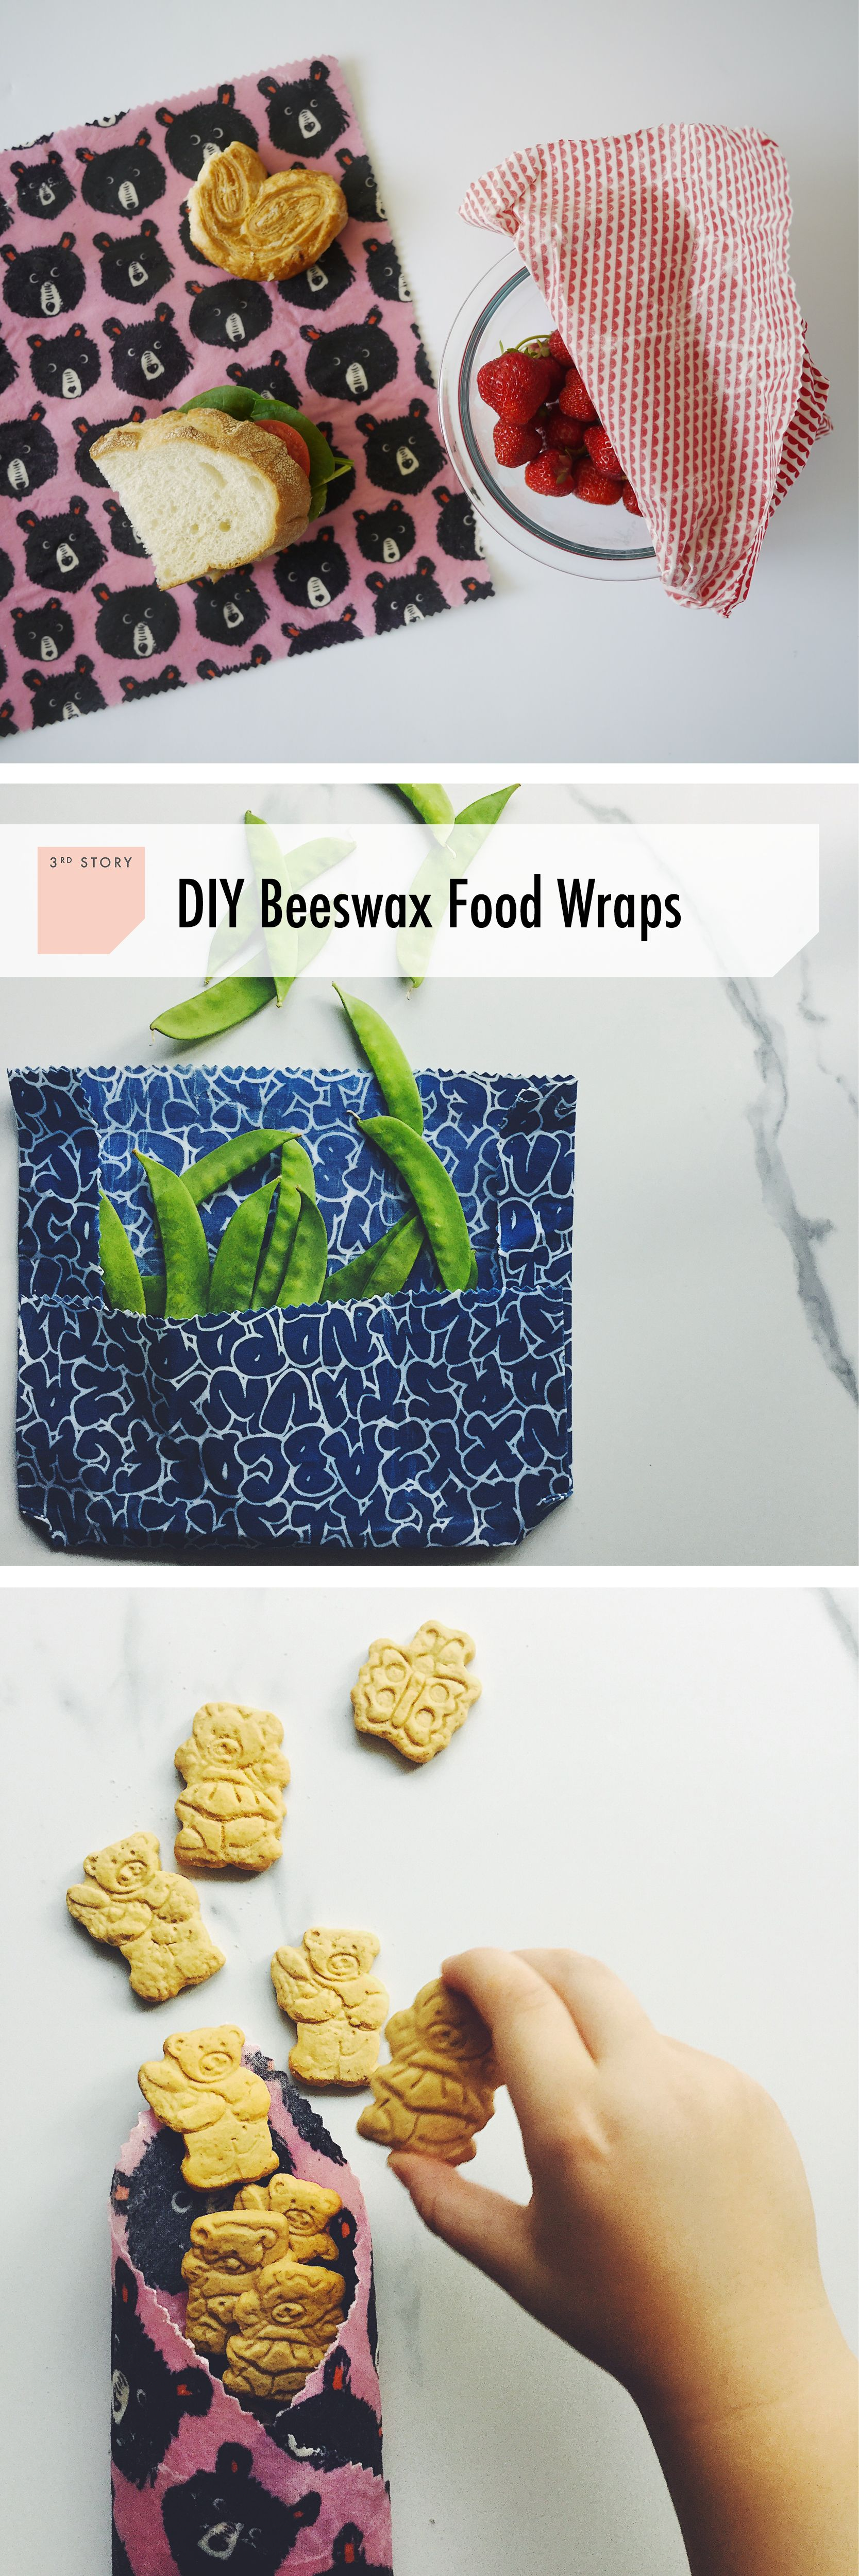 Back to school! DIY reusable beeswax wraps from your